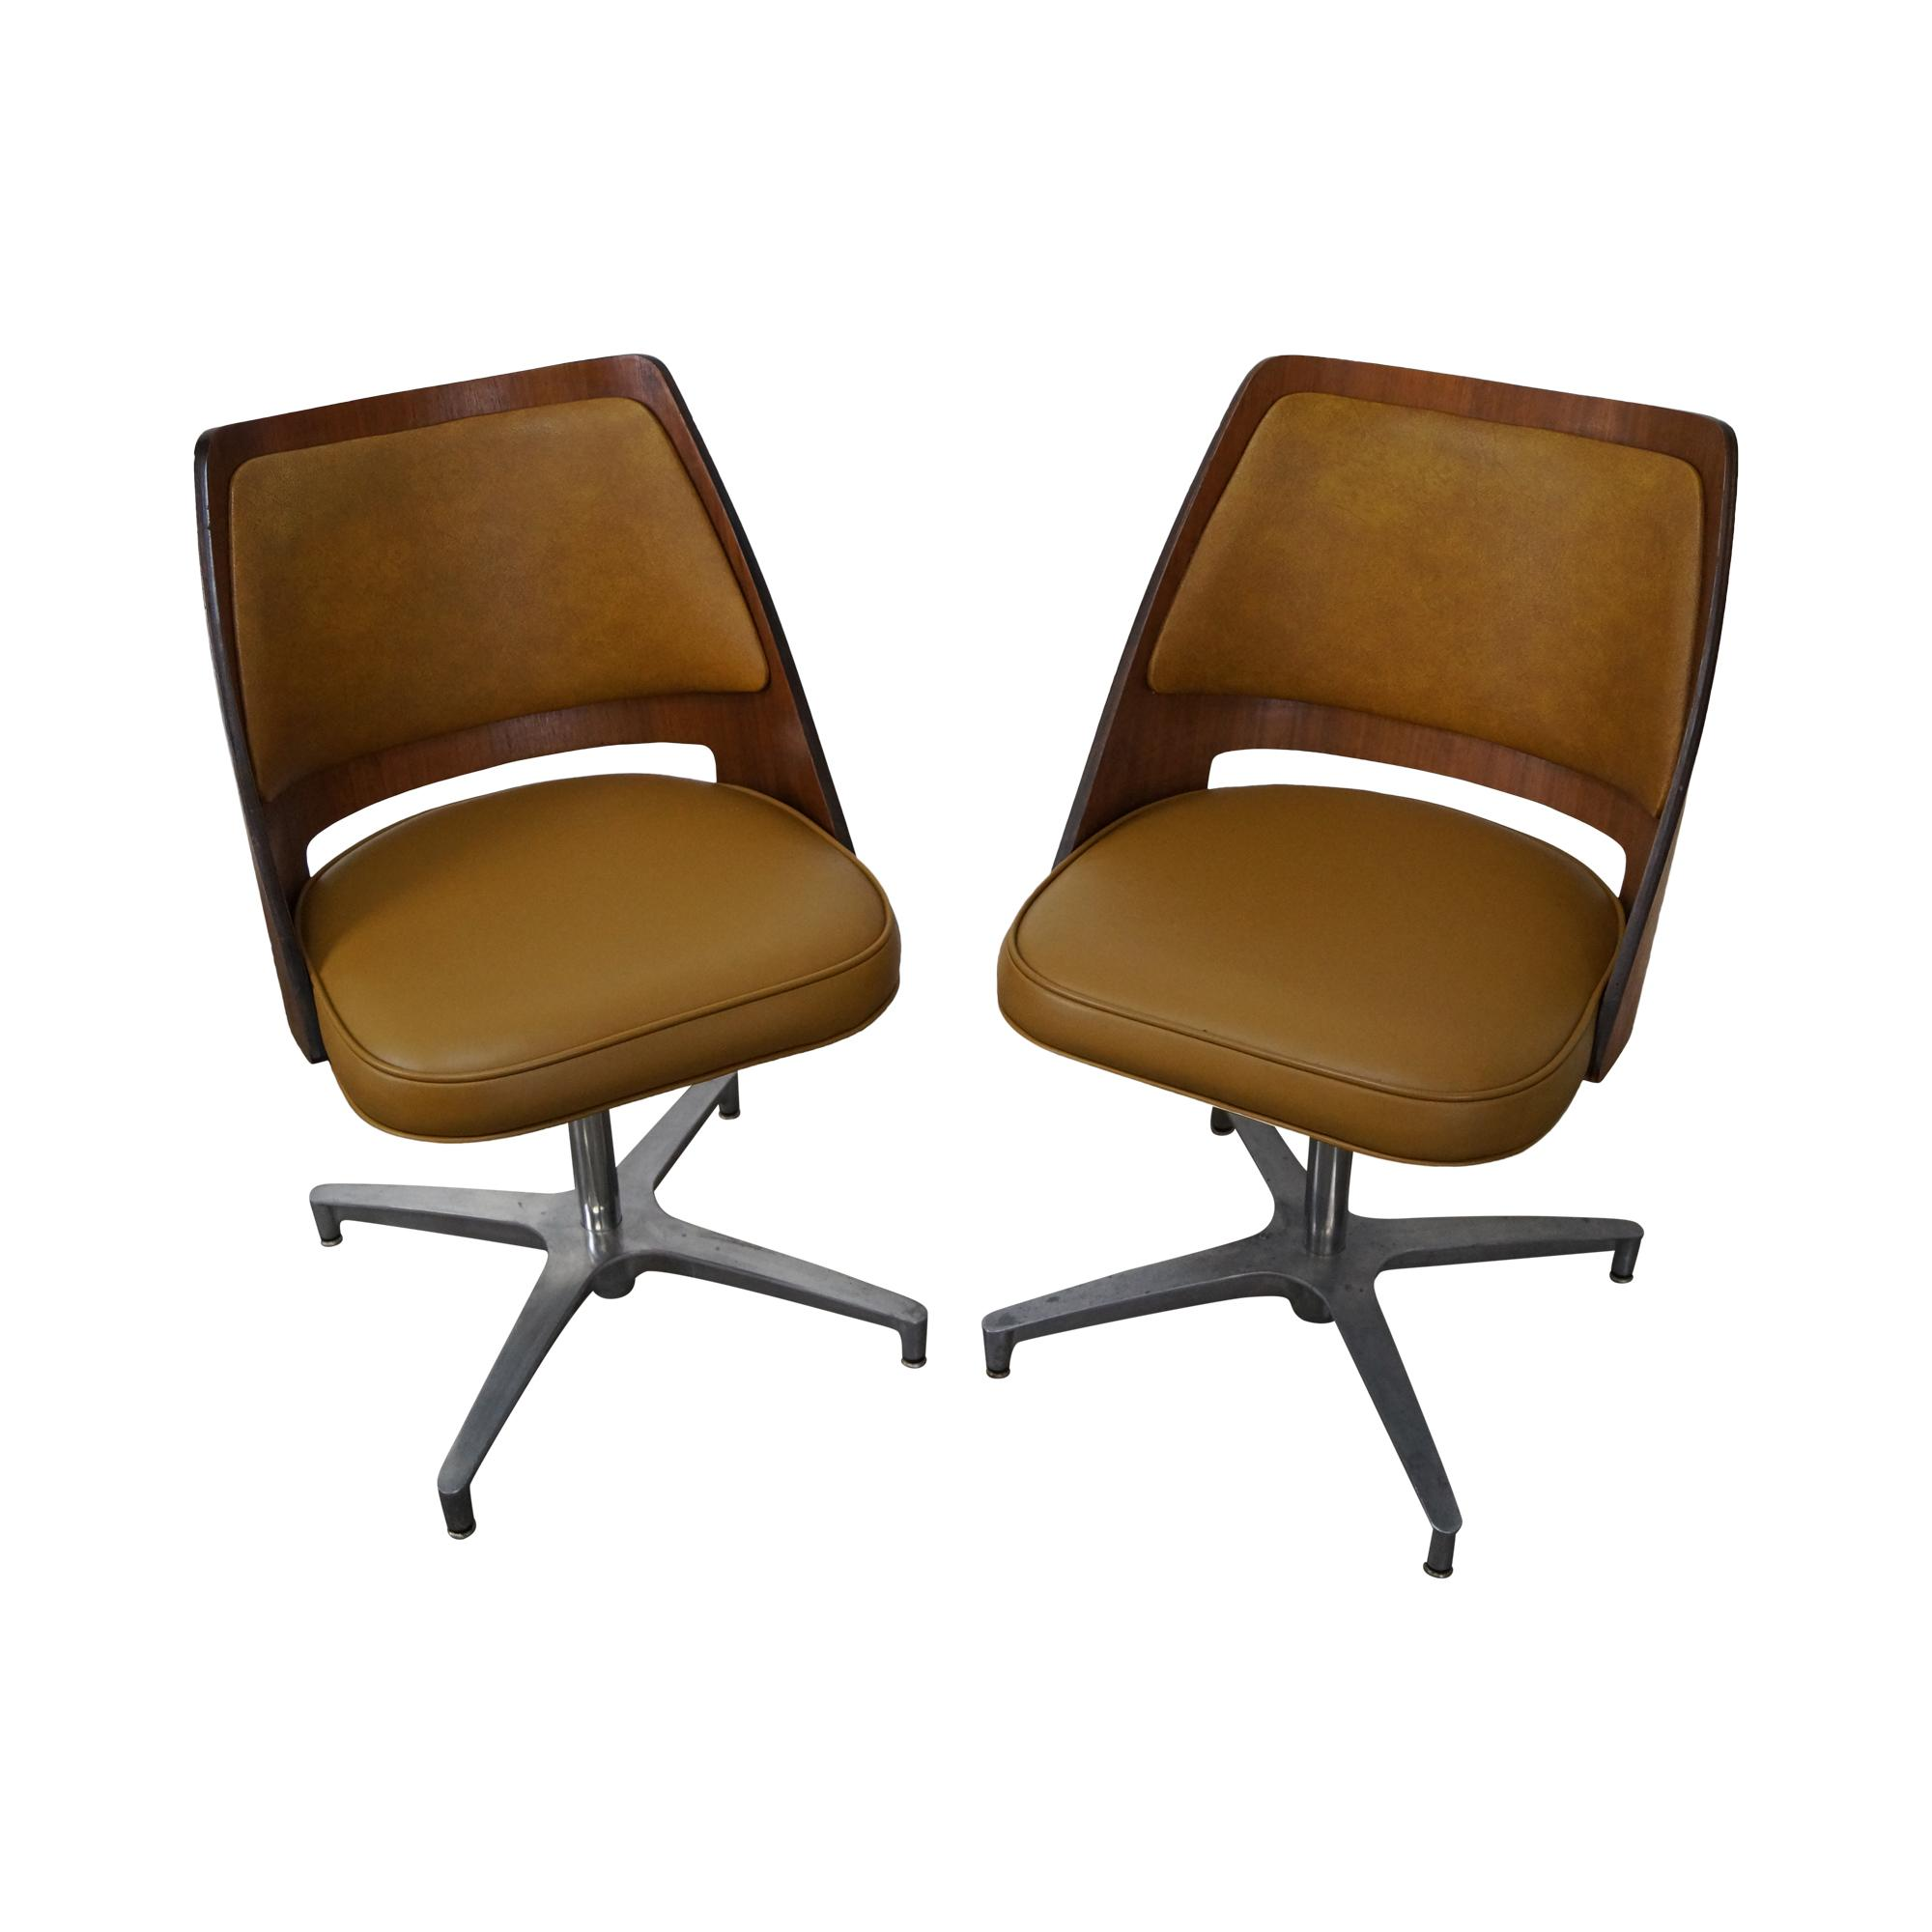 Outstanding Brody Mid Century Walnut Barrel Back Swivel Chairs Pair Gmtry Best Dining Table And Chair Ideas Images Gmtryco